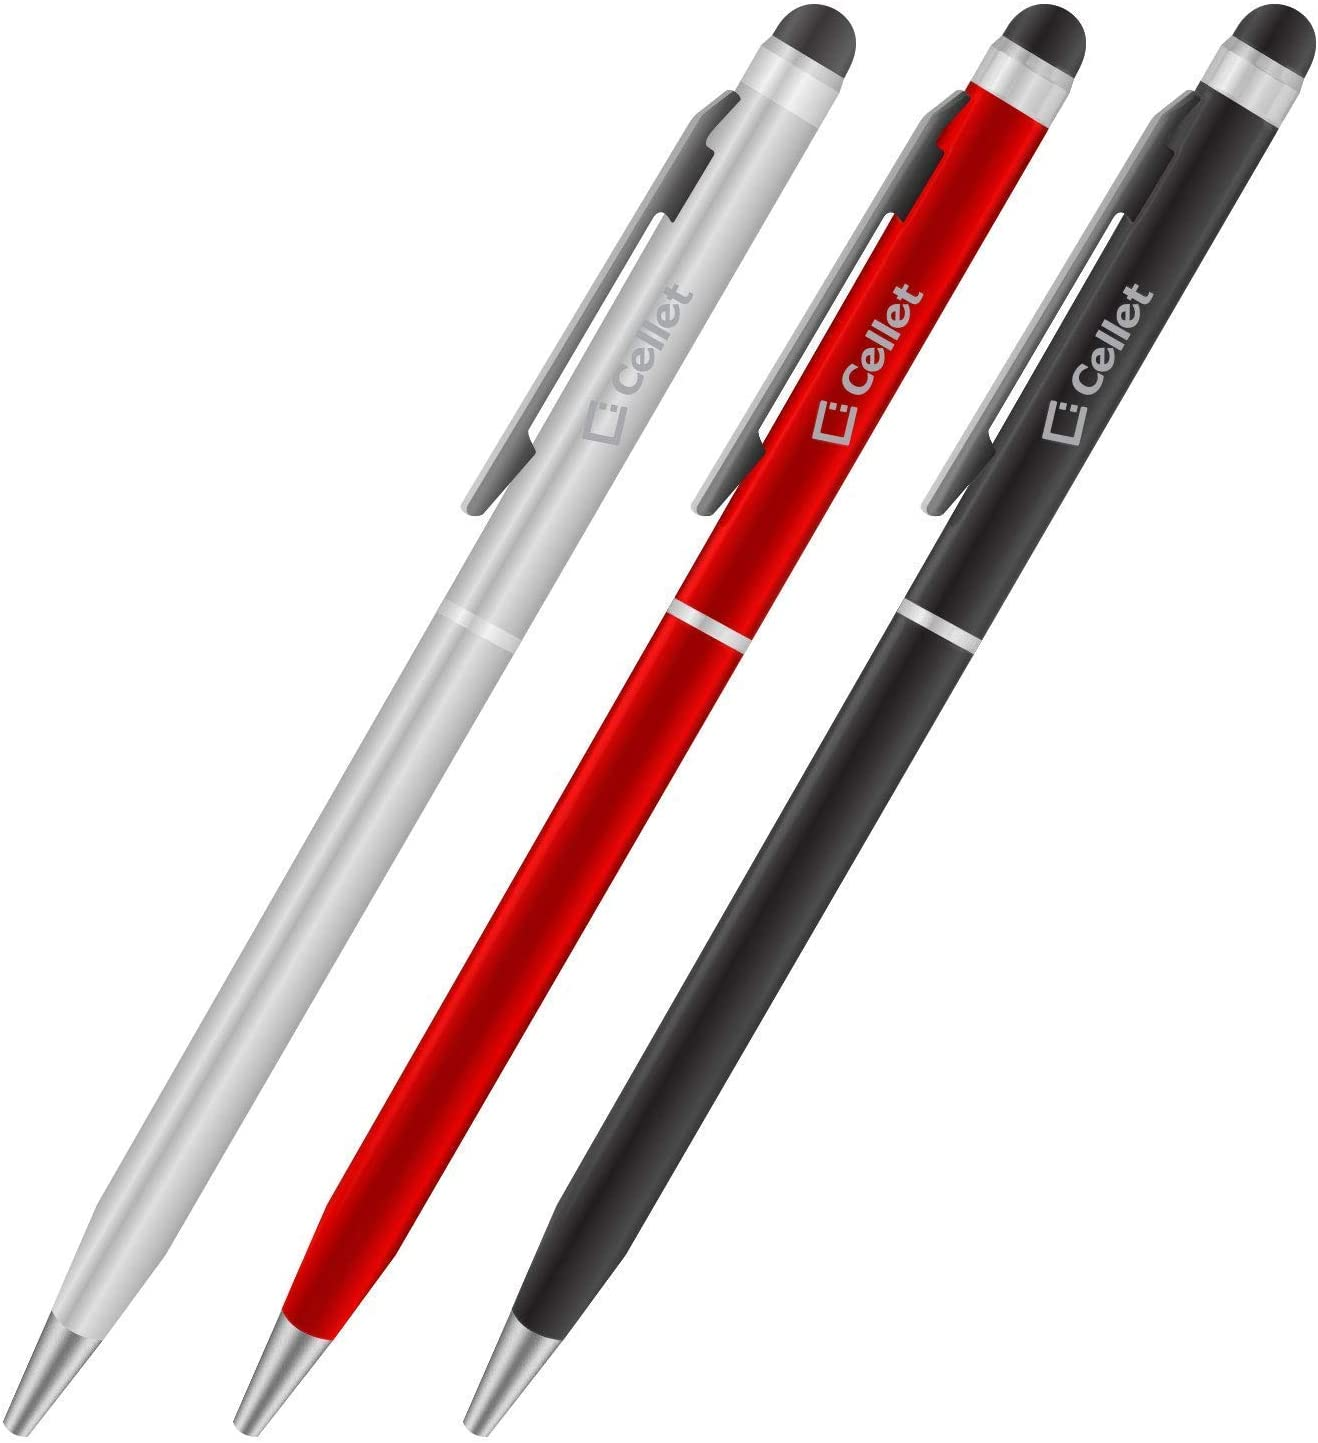 PRO Stylus Pen for Microsoft Surface Go with Ink, High Accuracy, Extra Sensitive, Compact Form for Touch Screens [3 Pack-Black-Red-Silver]